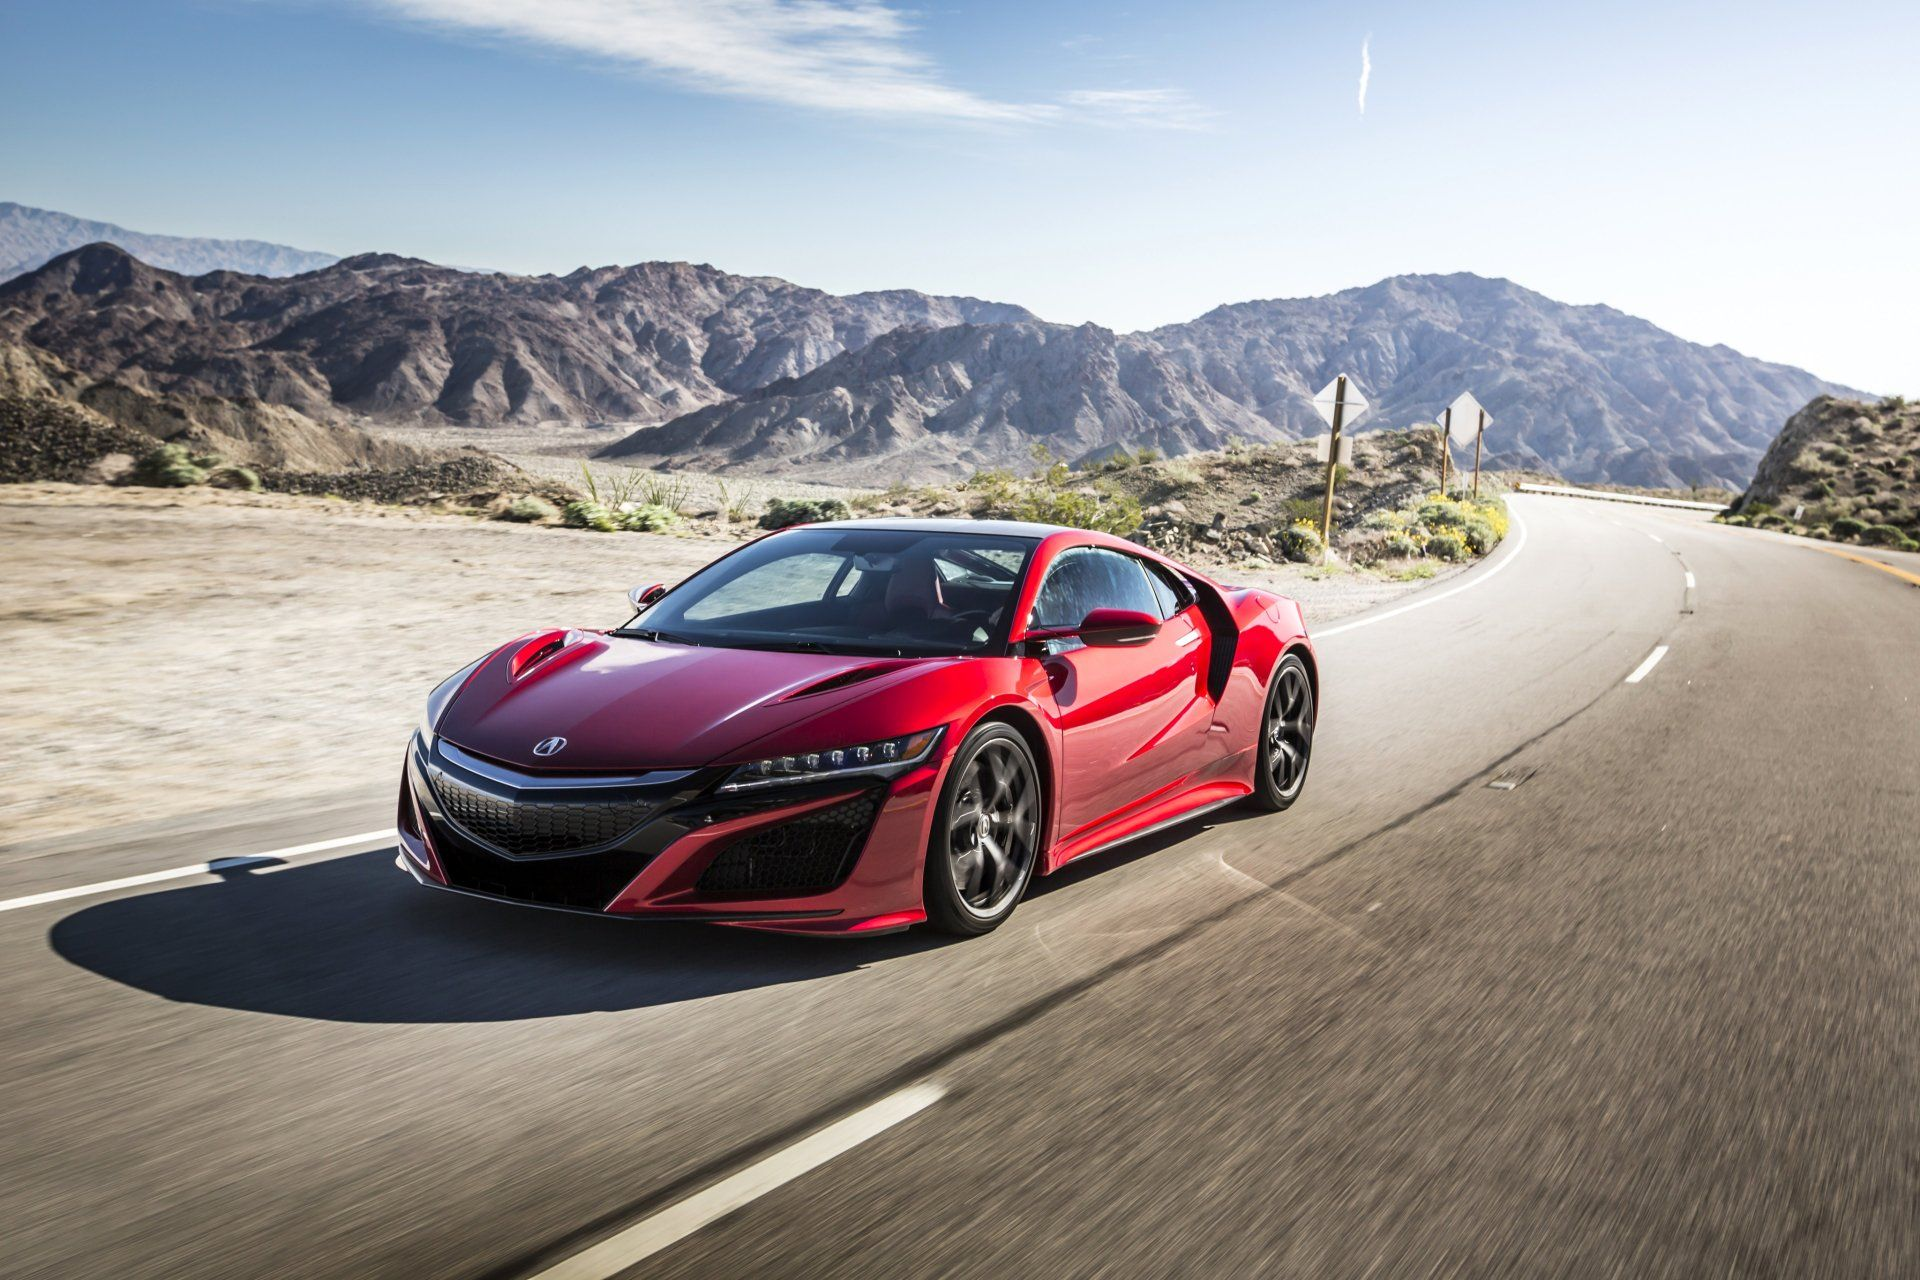 2021 Acura NSX Review: Release Date, Price, Specs, and MPG ...